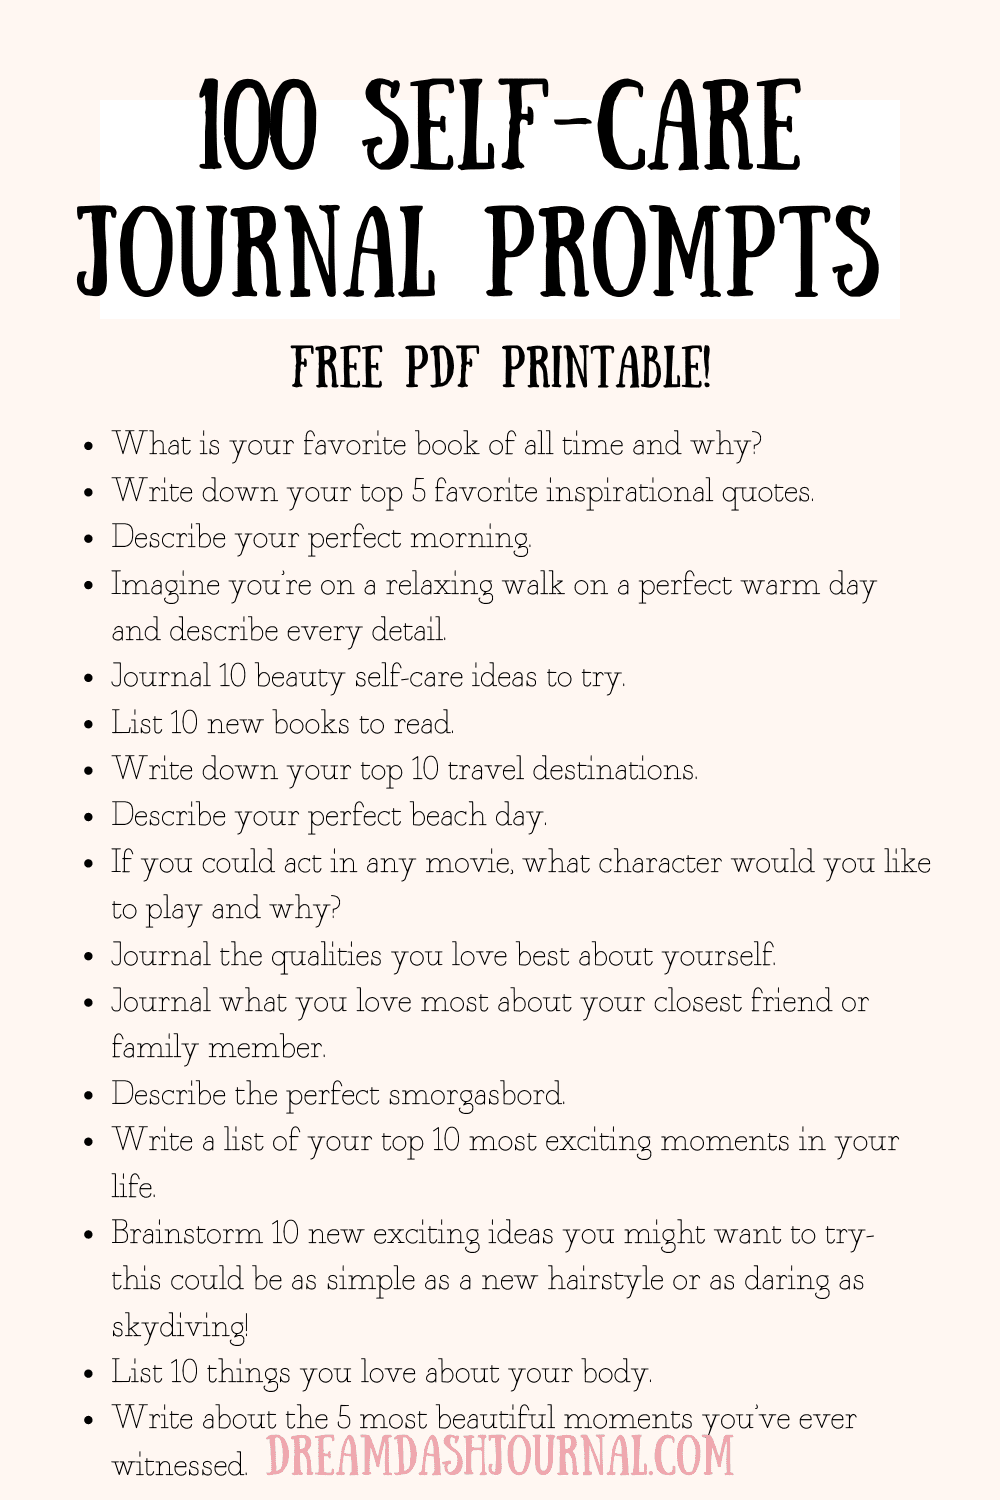 100 Self-Care Journal Prompts {With Free PDF Printable!}